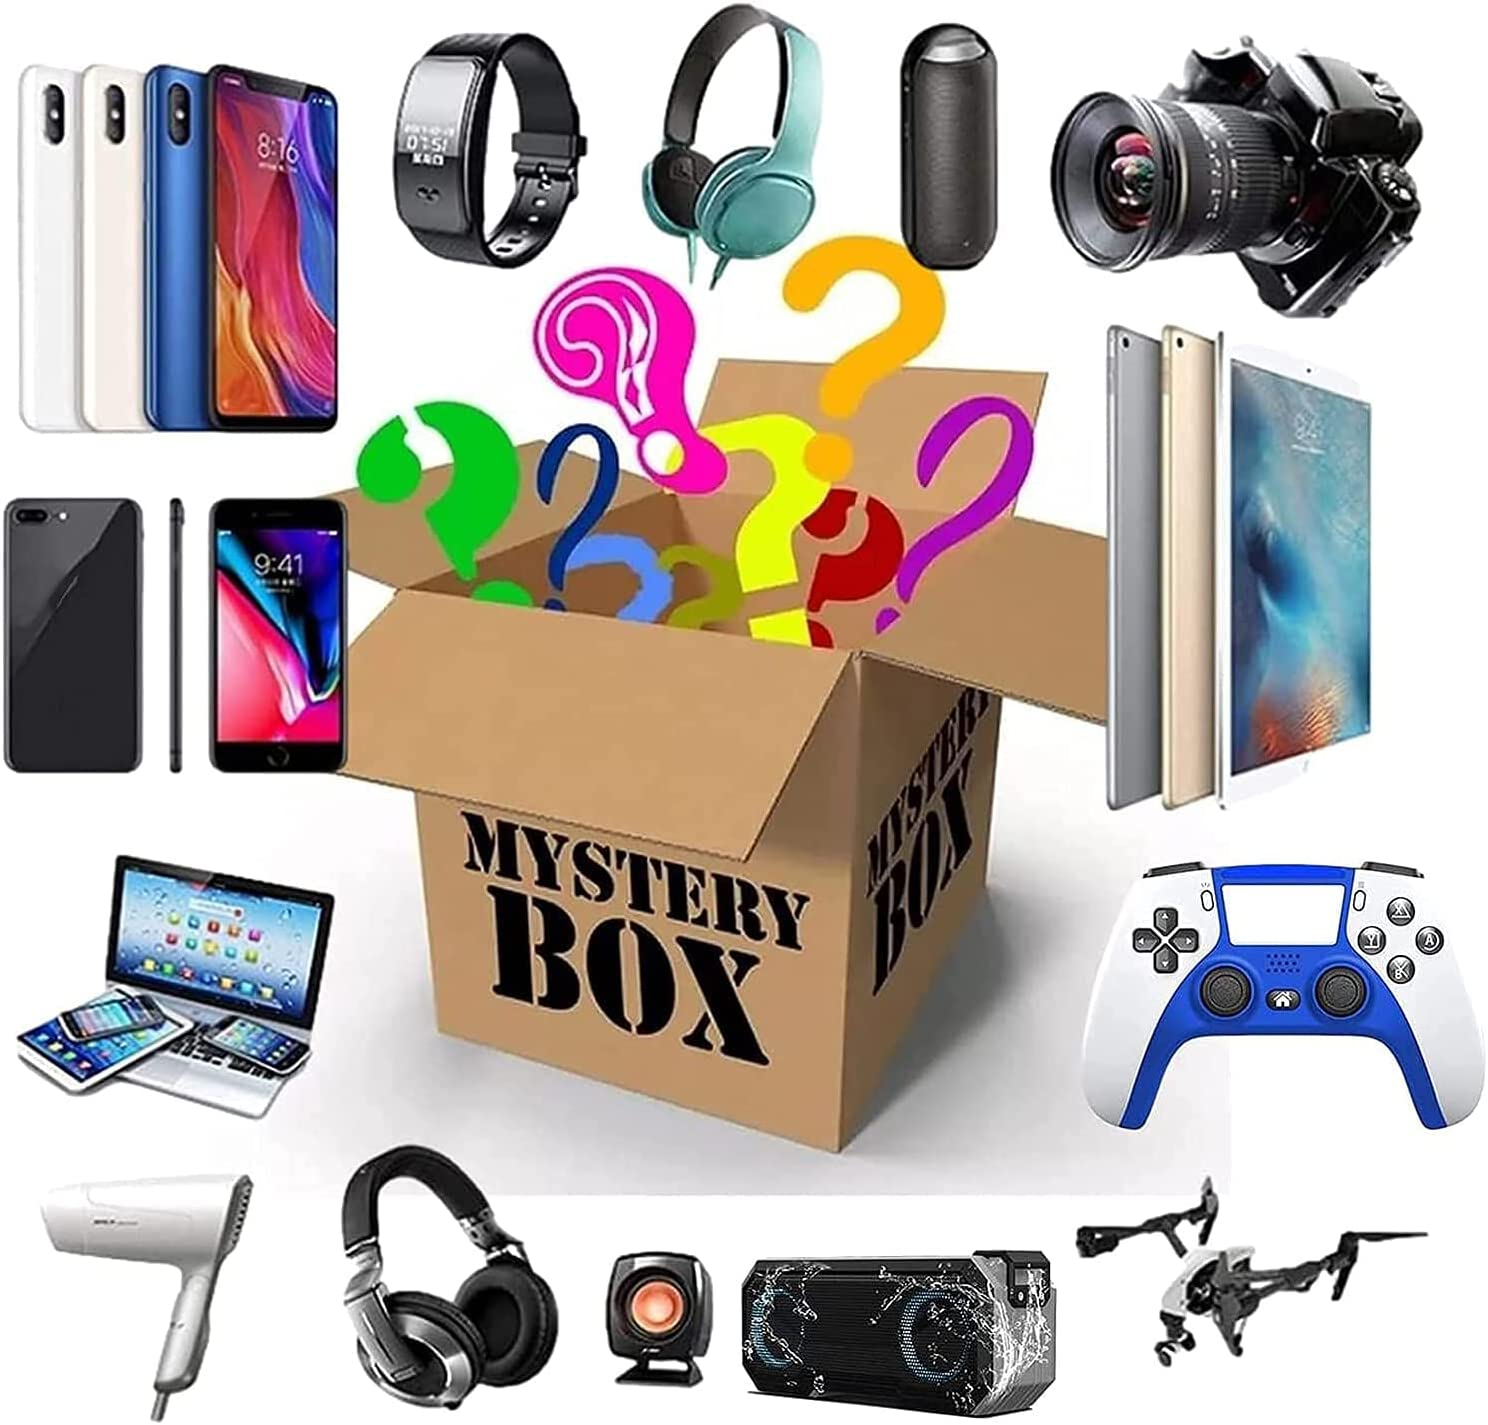 Lucky Box Mystery Boxes New Free Shipping Indianapolis Mall Super Cost Electronic Blind